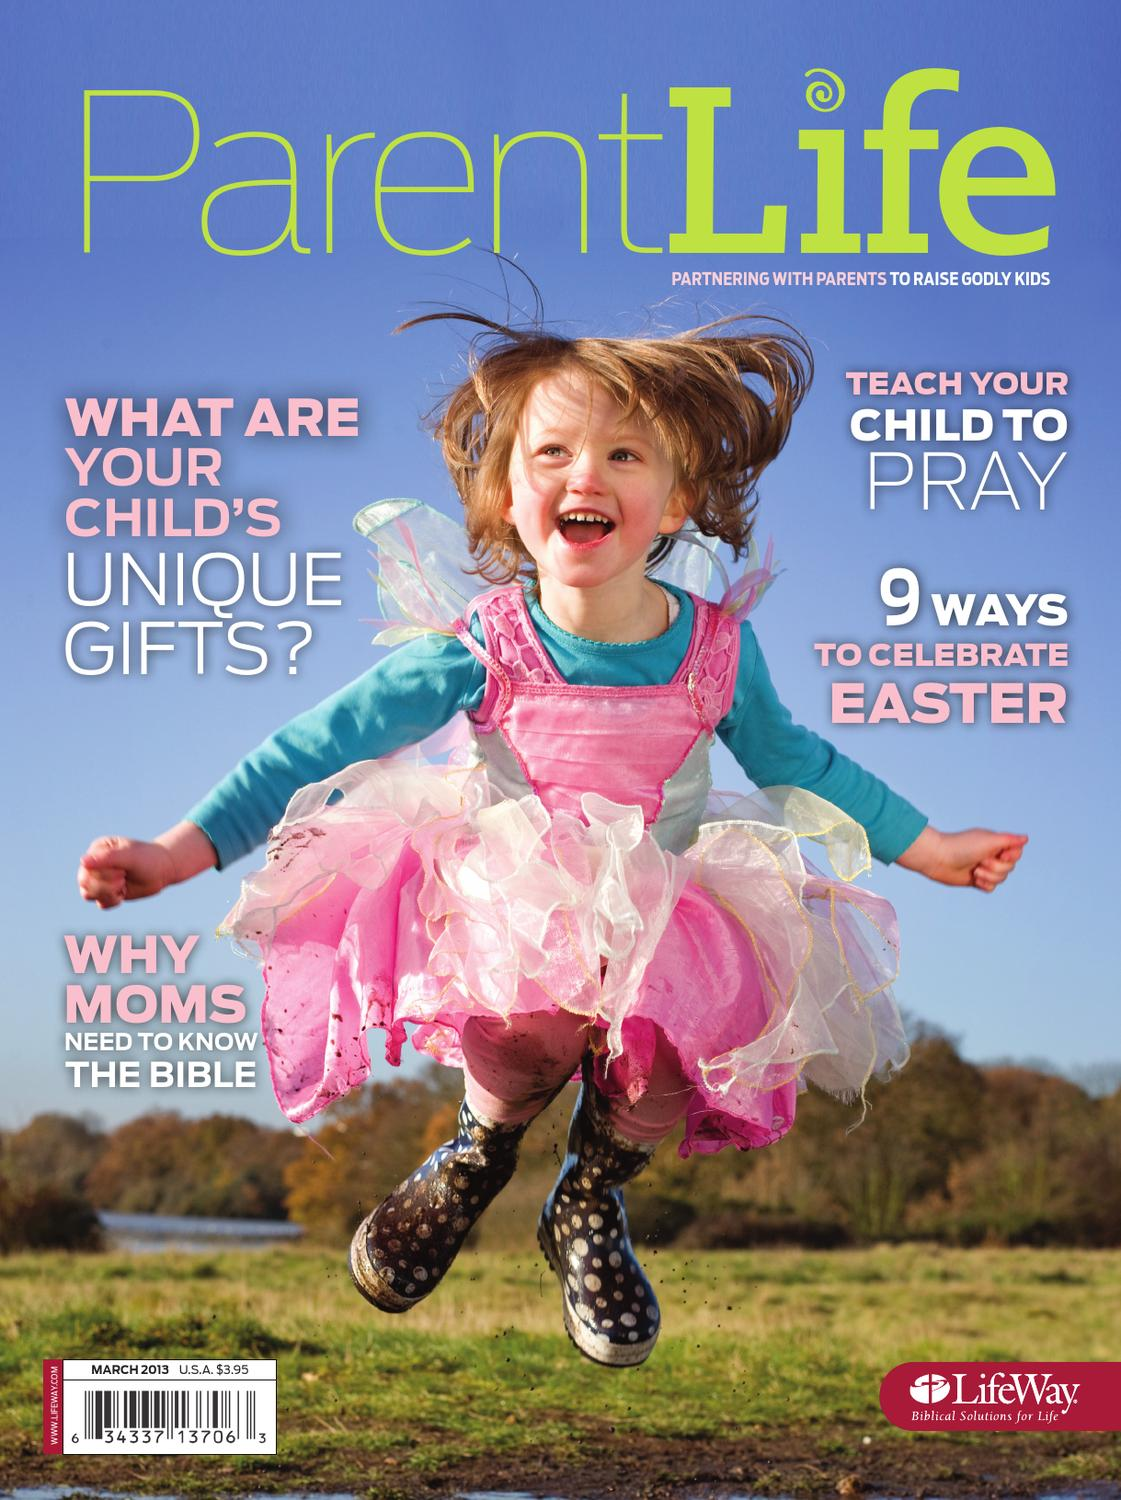 Family Ministry Moment: Parent Life Magazine